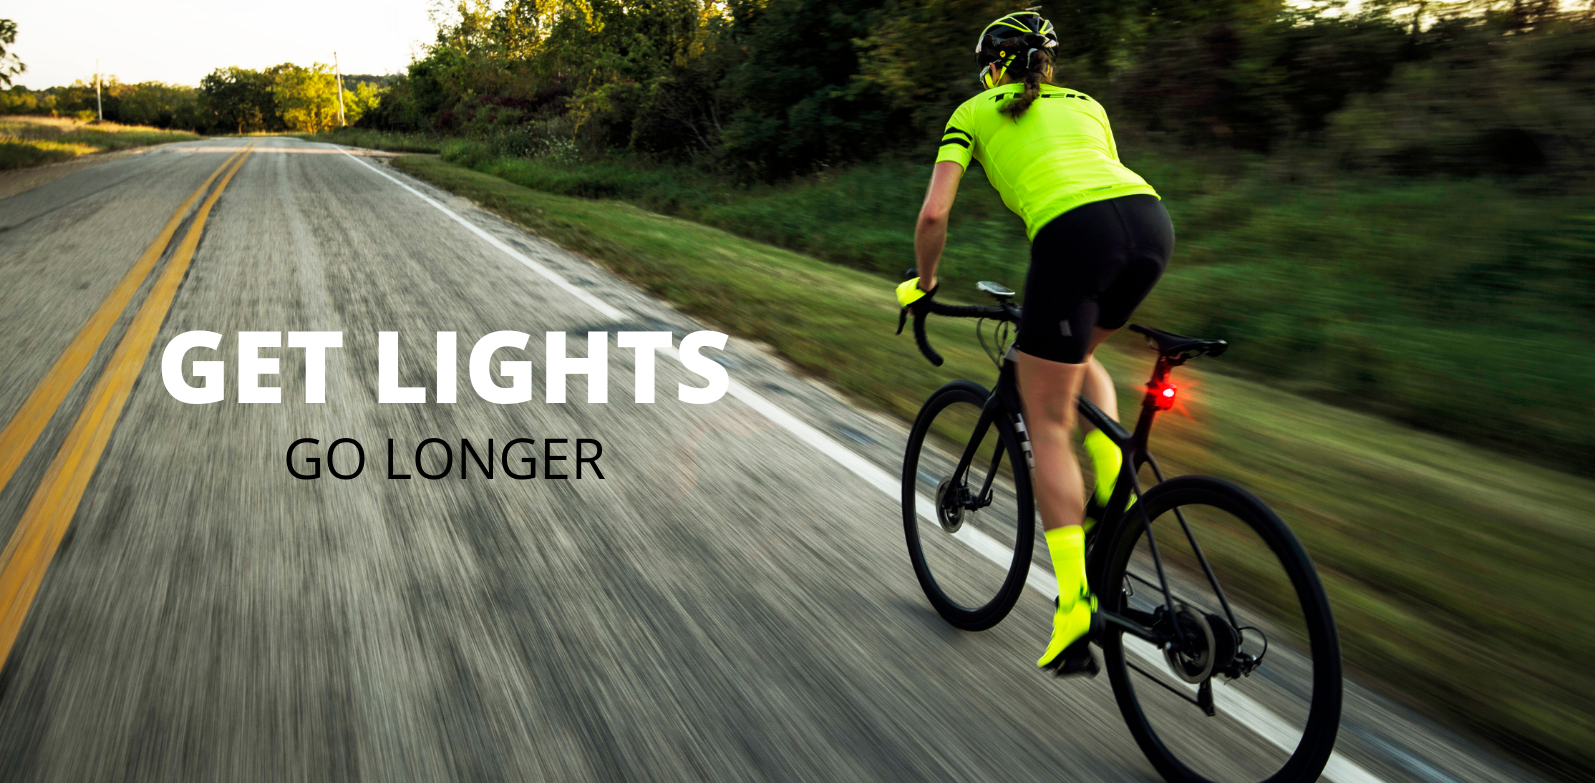 Keep Your Ride Days Long With The Right Lights